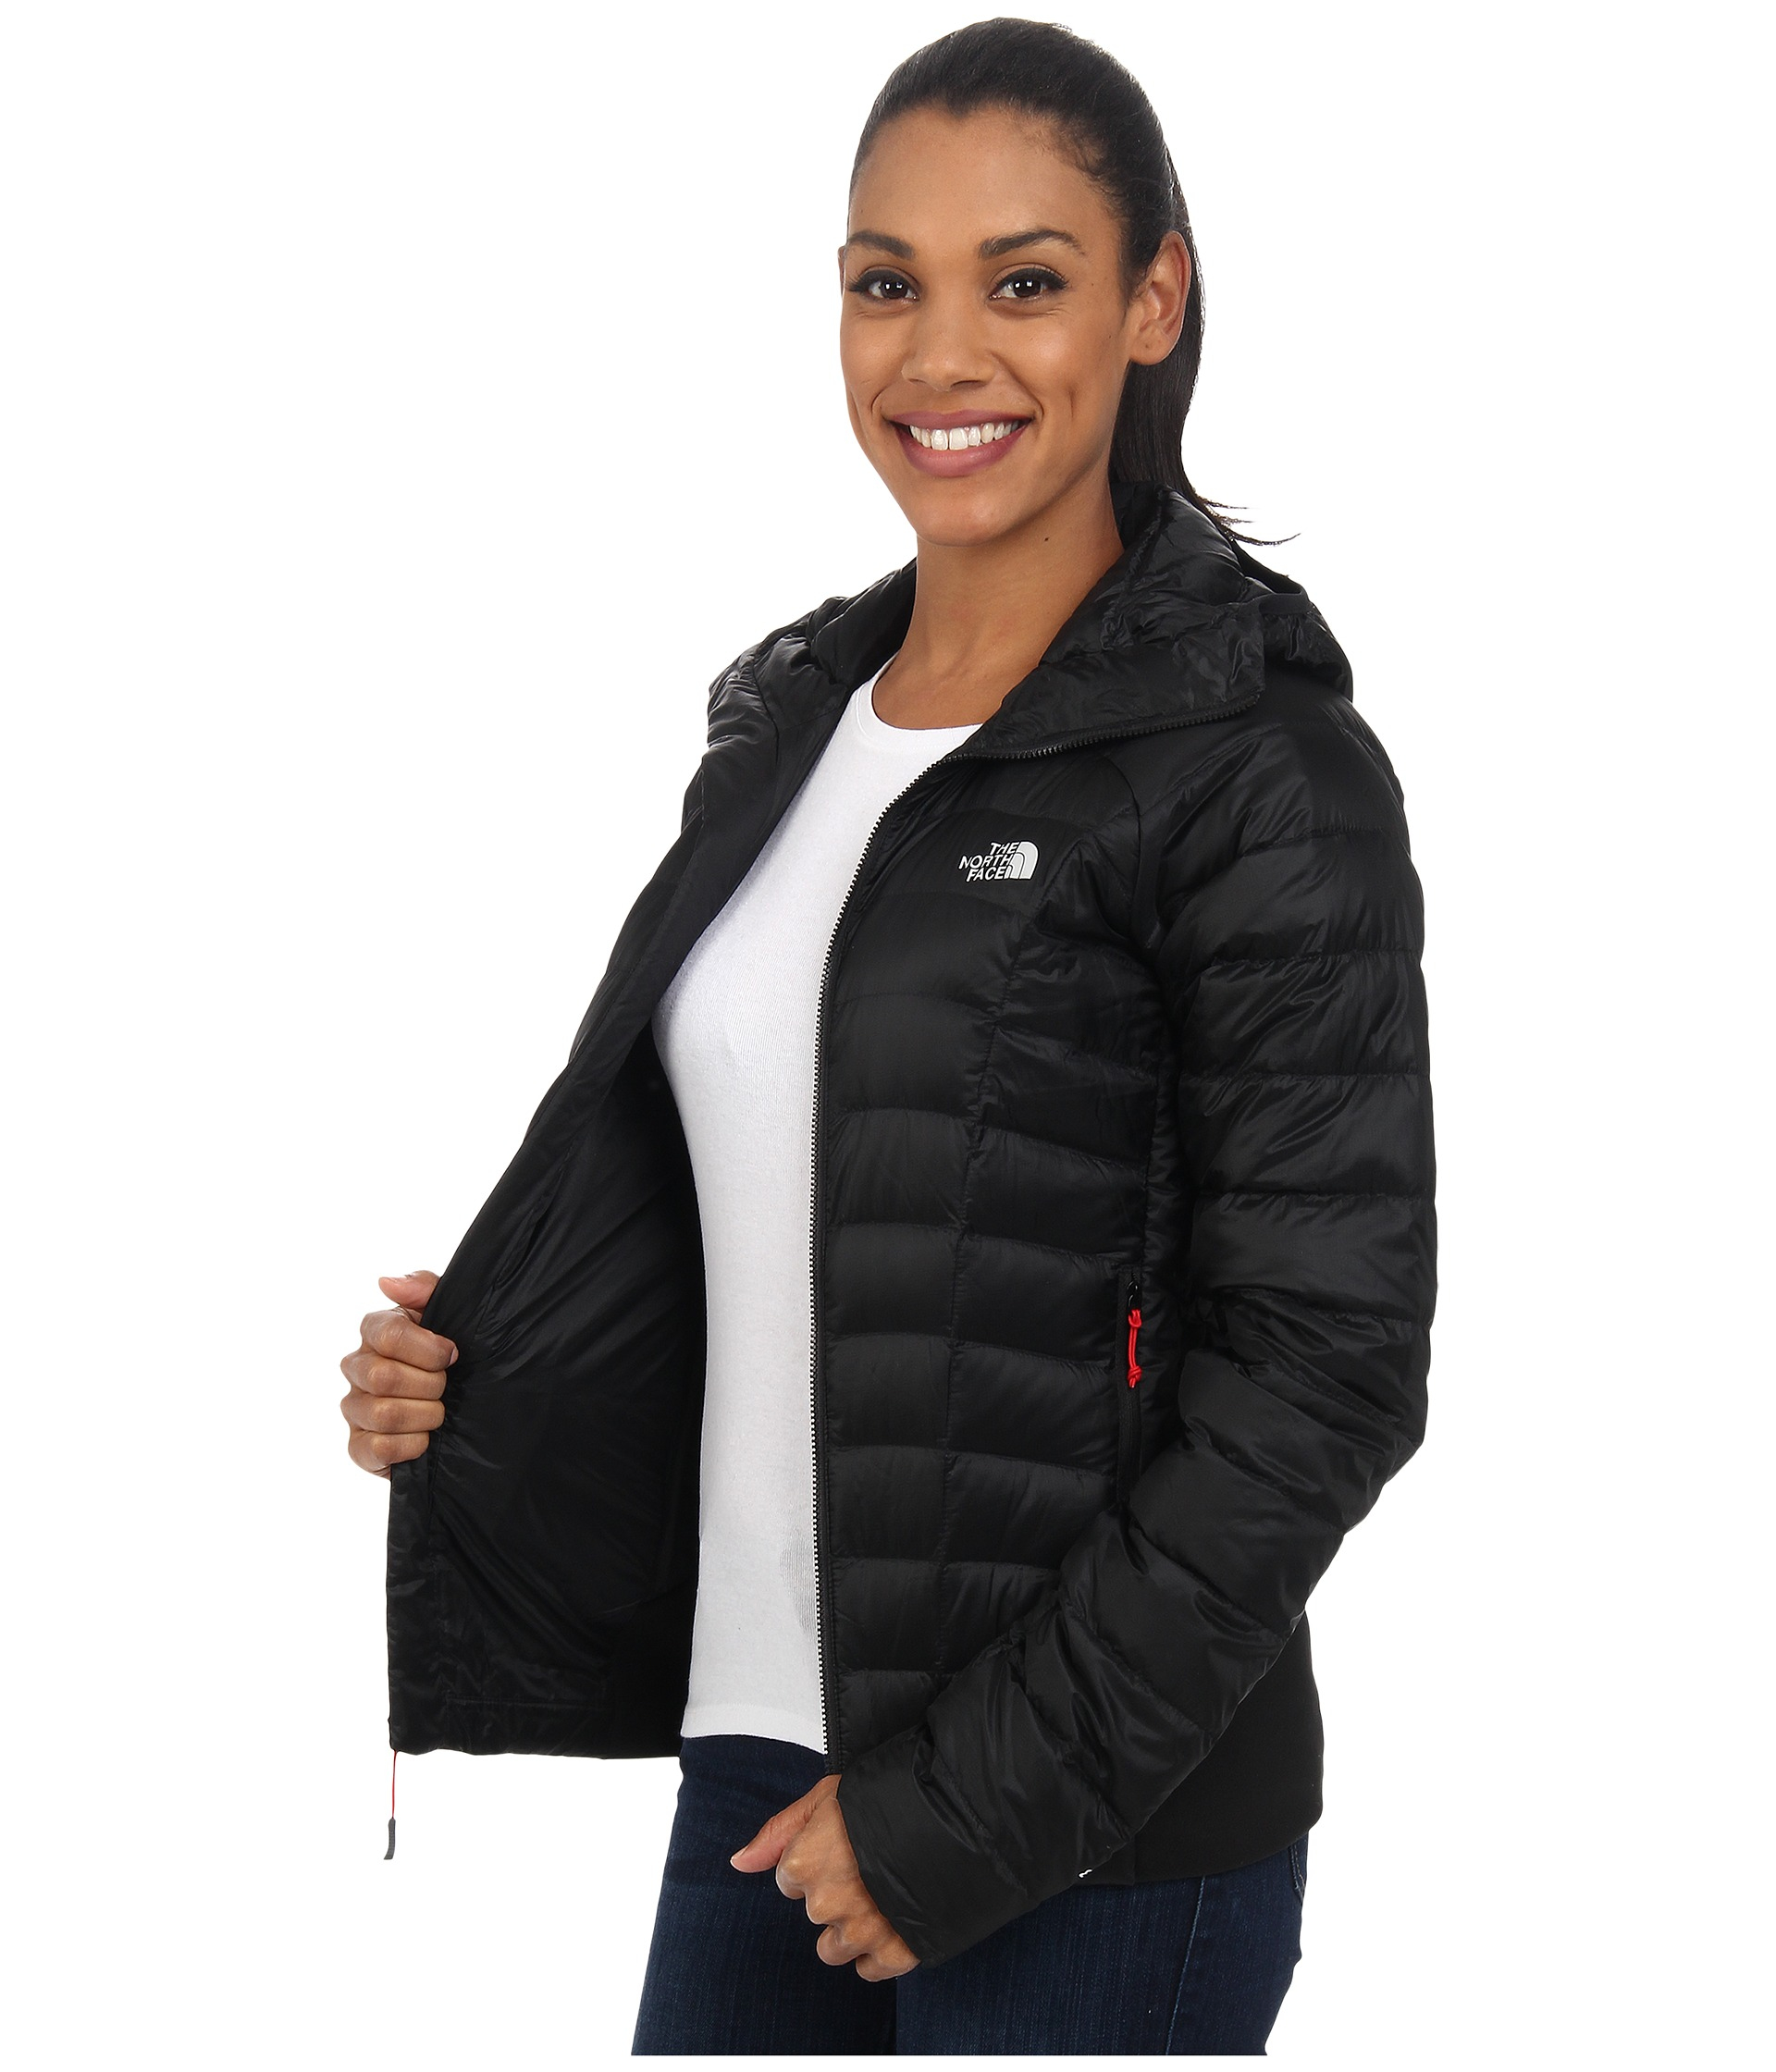 ... low price lyst the north face quince hooded jacket in black 5e684 c4940 81e8c606e